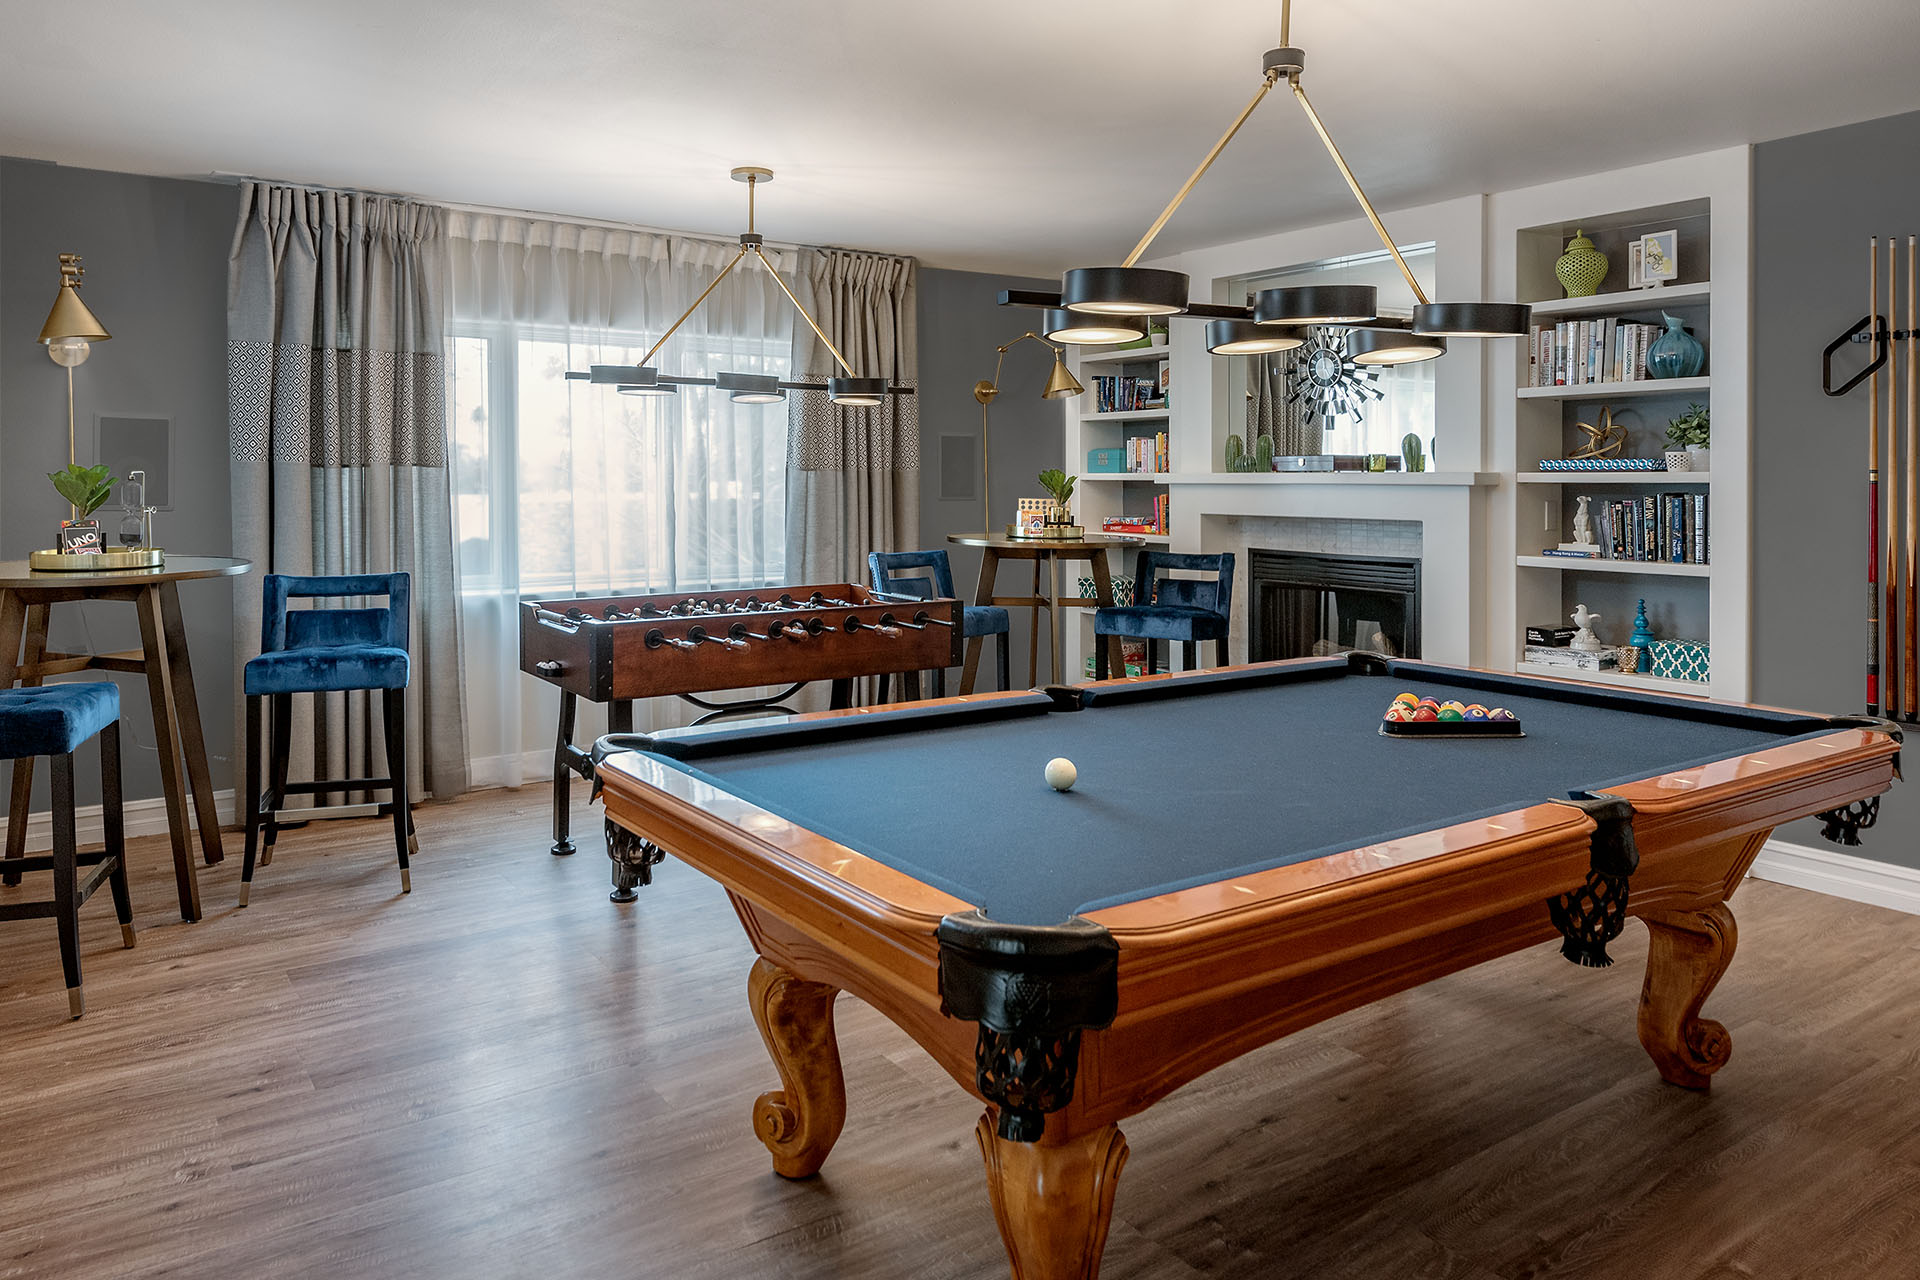 Palm-Springs-Vacation-Rental-Game-Room-Pool-Table